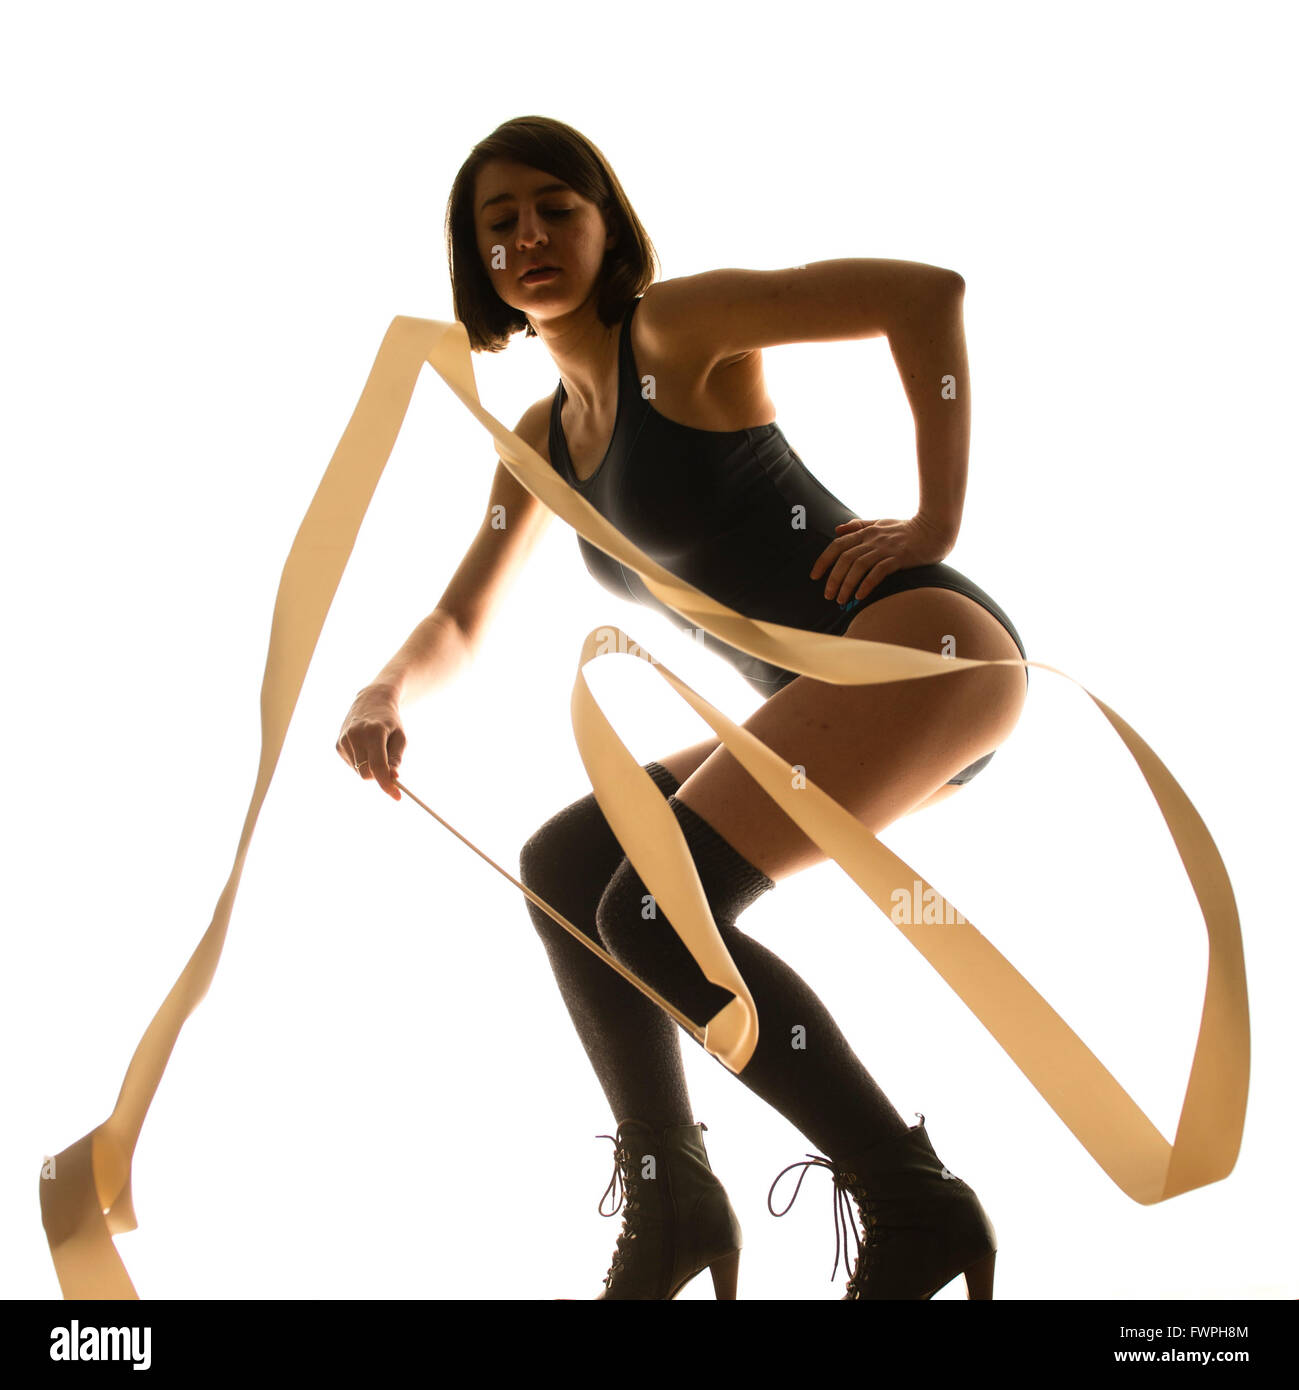 Rhythmic gymnastics : a young woman dancing with ribbons - Stock Image